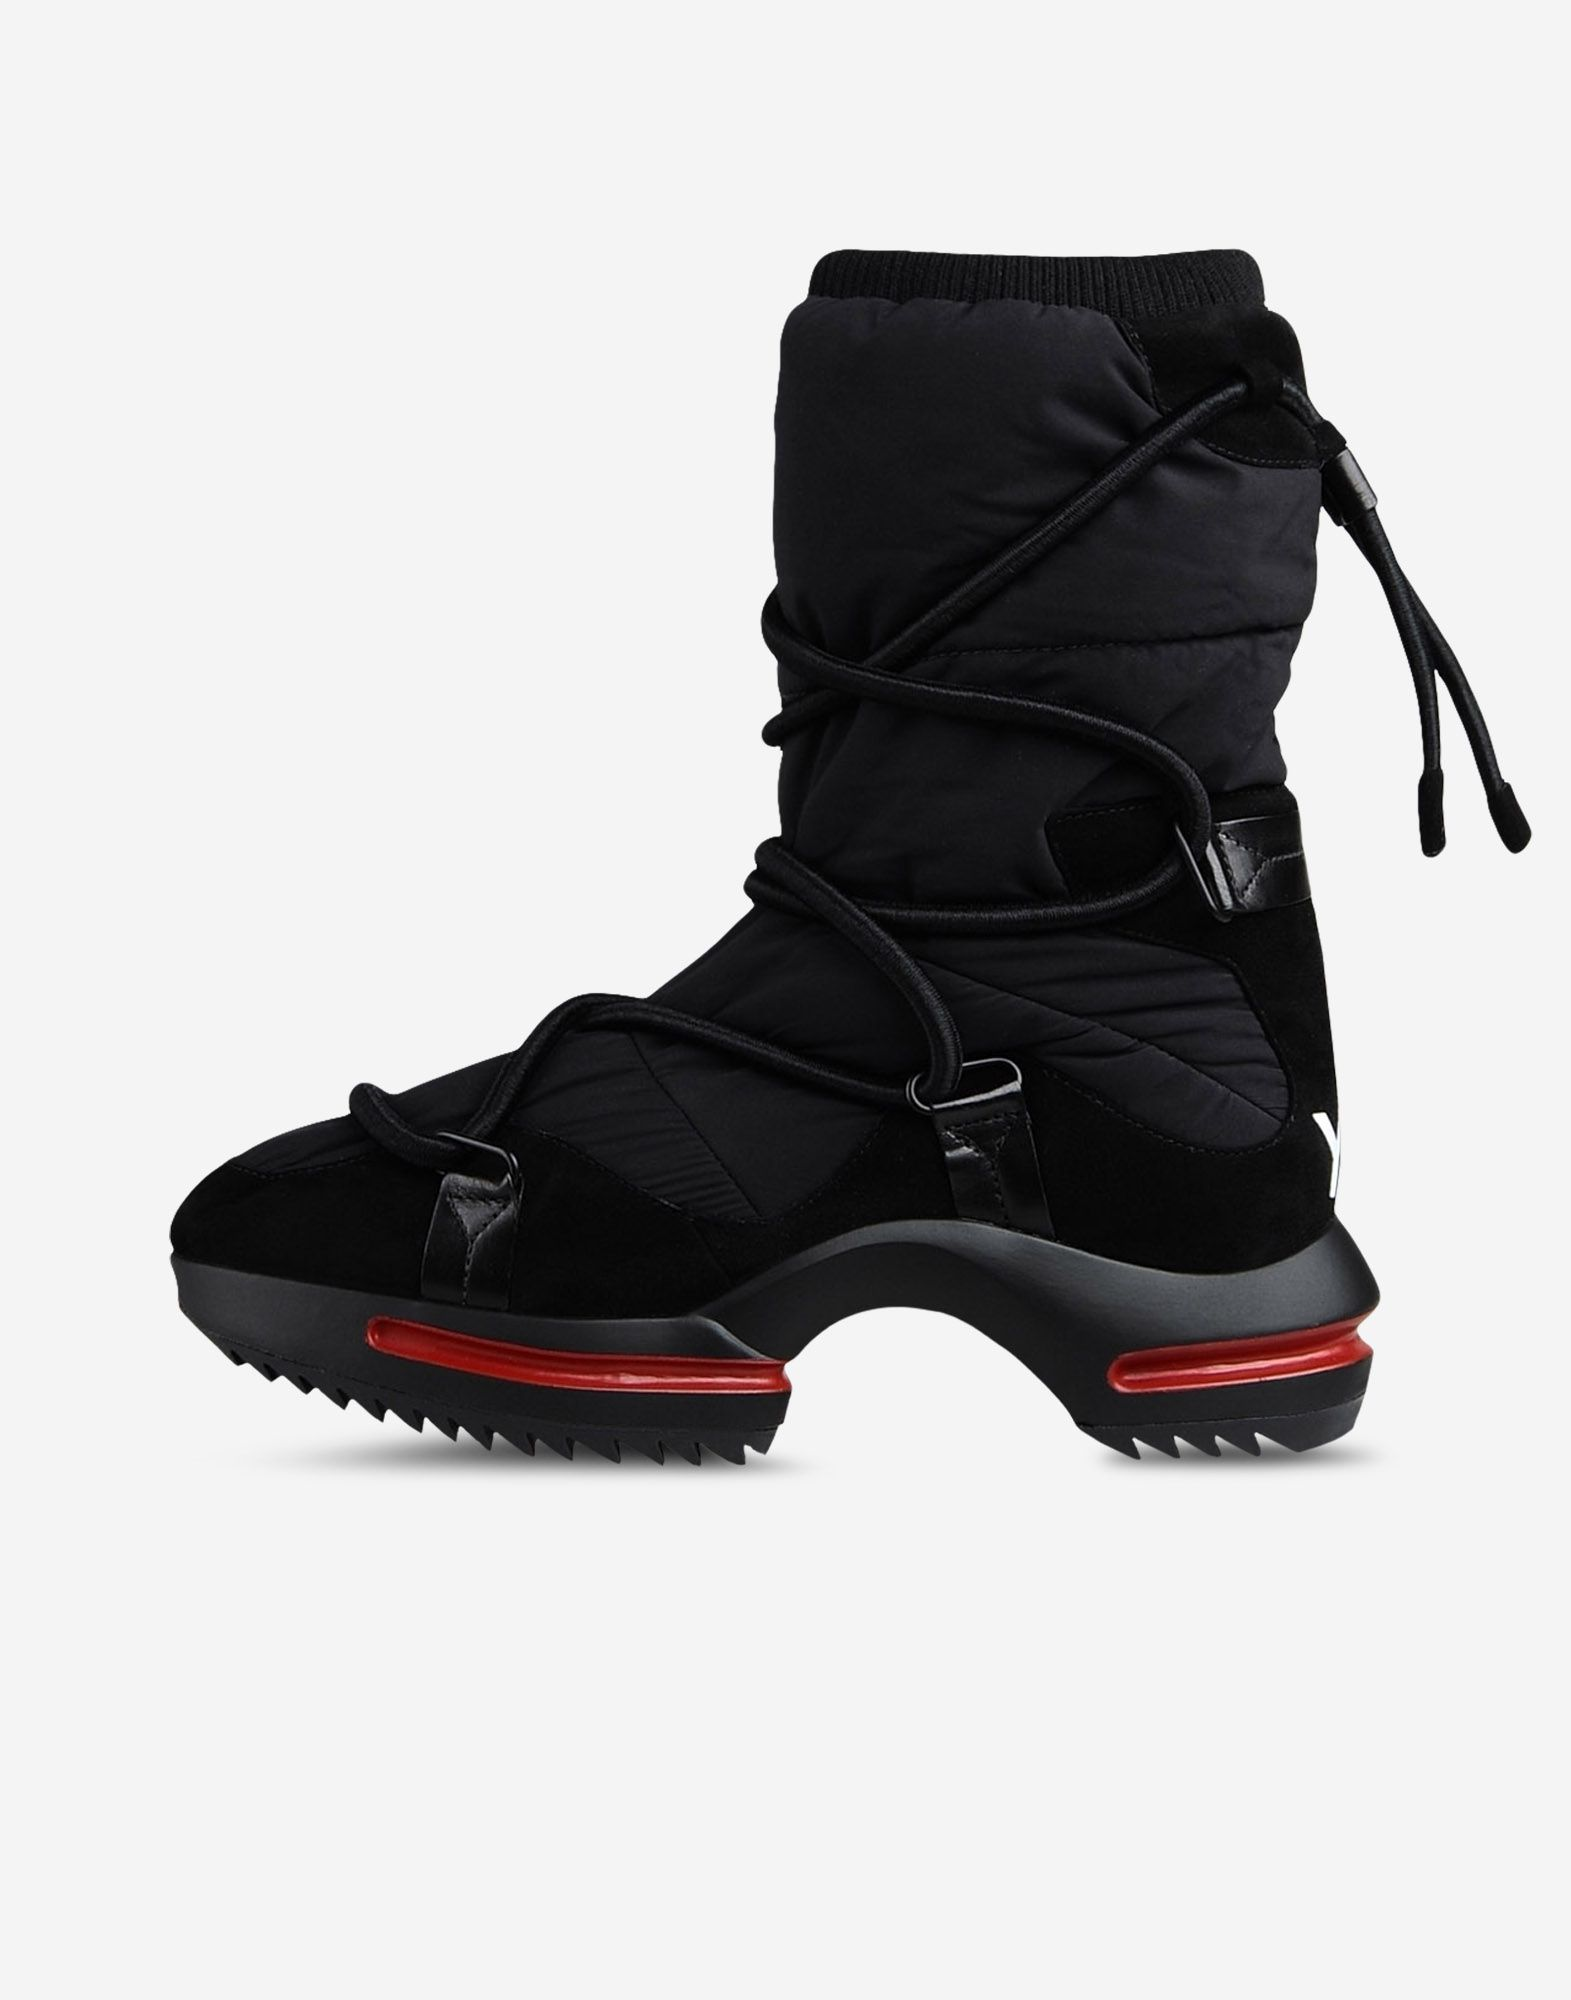 new product a1b87 96ae6 Y 3 Regu Snow Boot Ankle Boots | Adidas Y-3 Official Site